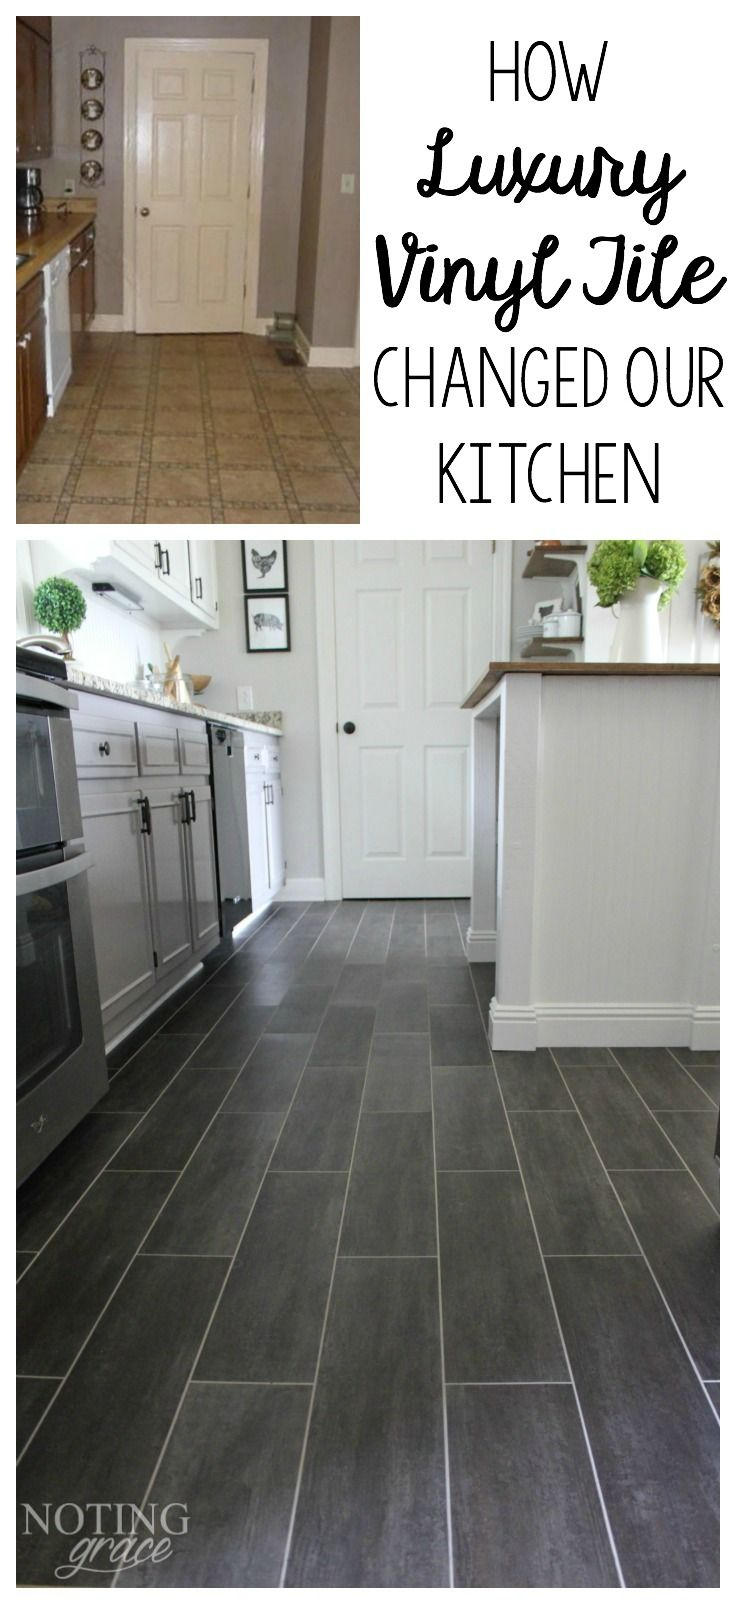 Diy Kitchen Flooring  Kitchen Ideas  Pinterest  Luxury. Sofa For Living Room. Yellow And Cream Living Room. Country Themed Living Rooms. Wall Stickers In Living Room. Organize My Living Room. Living Room Armoires. 2 Tone Living Room Walls. Low Price Living Room Furniture